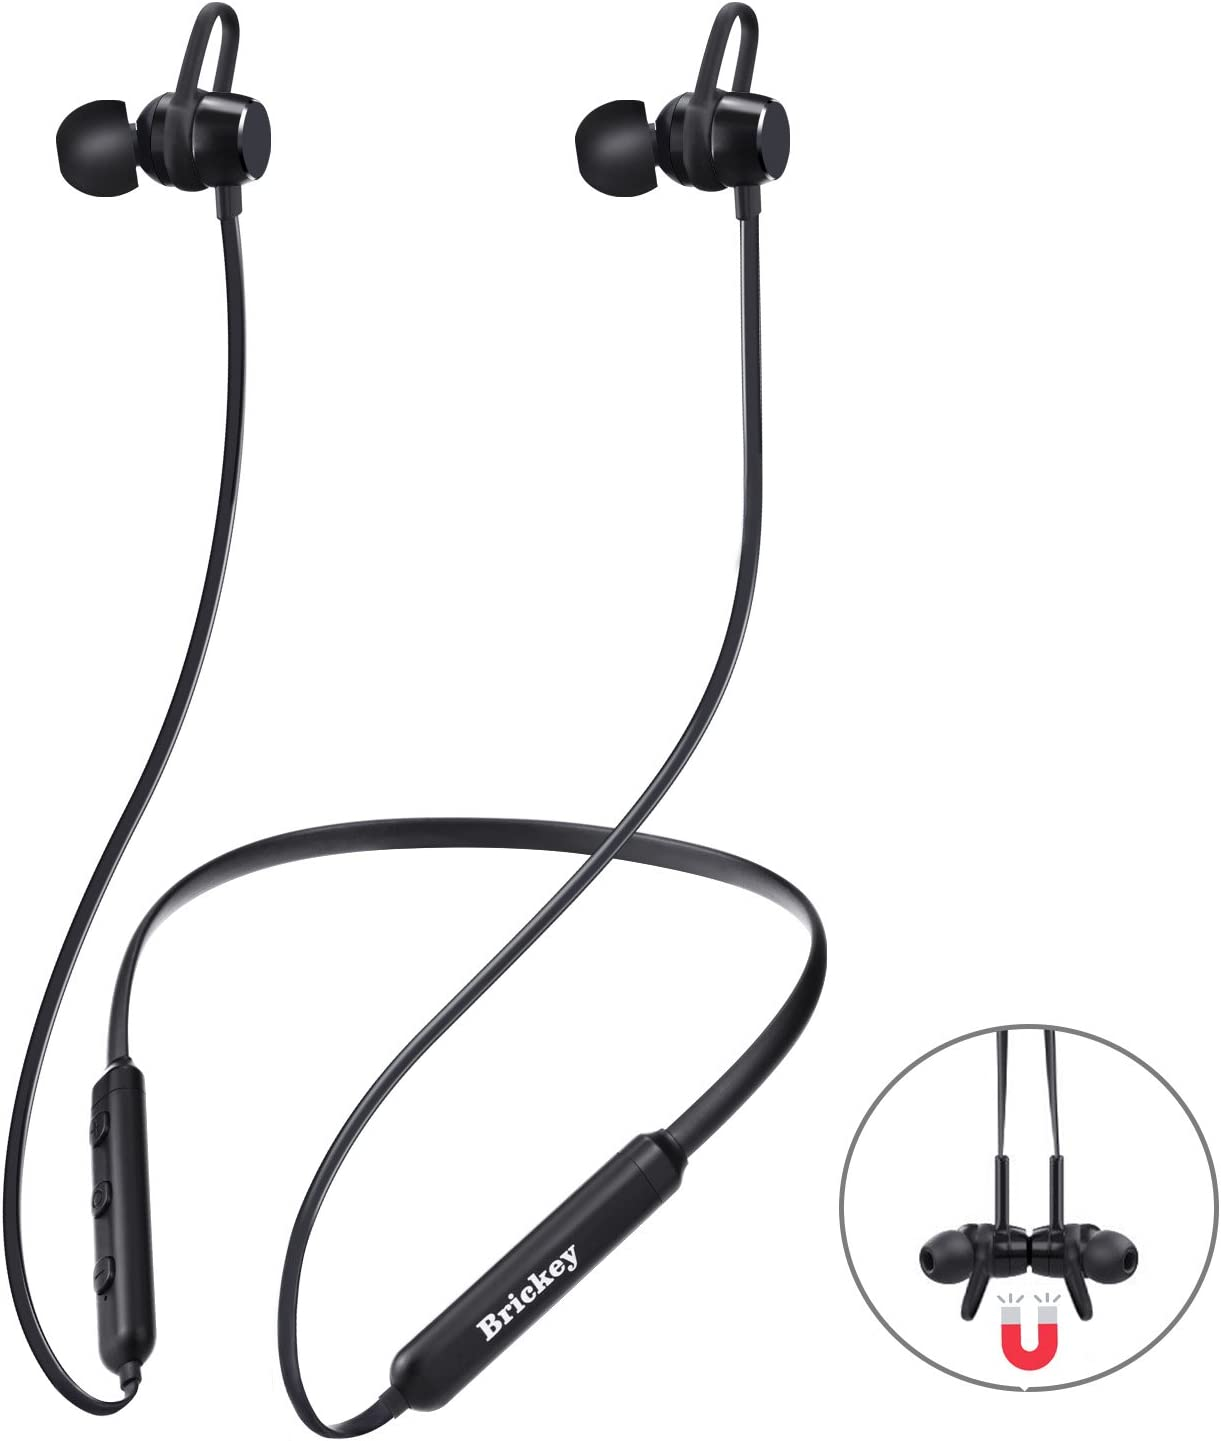 Bluetooth Headphones Wireless Headphones with Bluetooth 4.2 Sweatproof Earphones with Magnetic Earbuds for Sport Outdoor 9 Hours Playtime Sport Headphones for iPhone X/8/7/plus Samsung and Androi